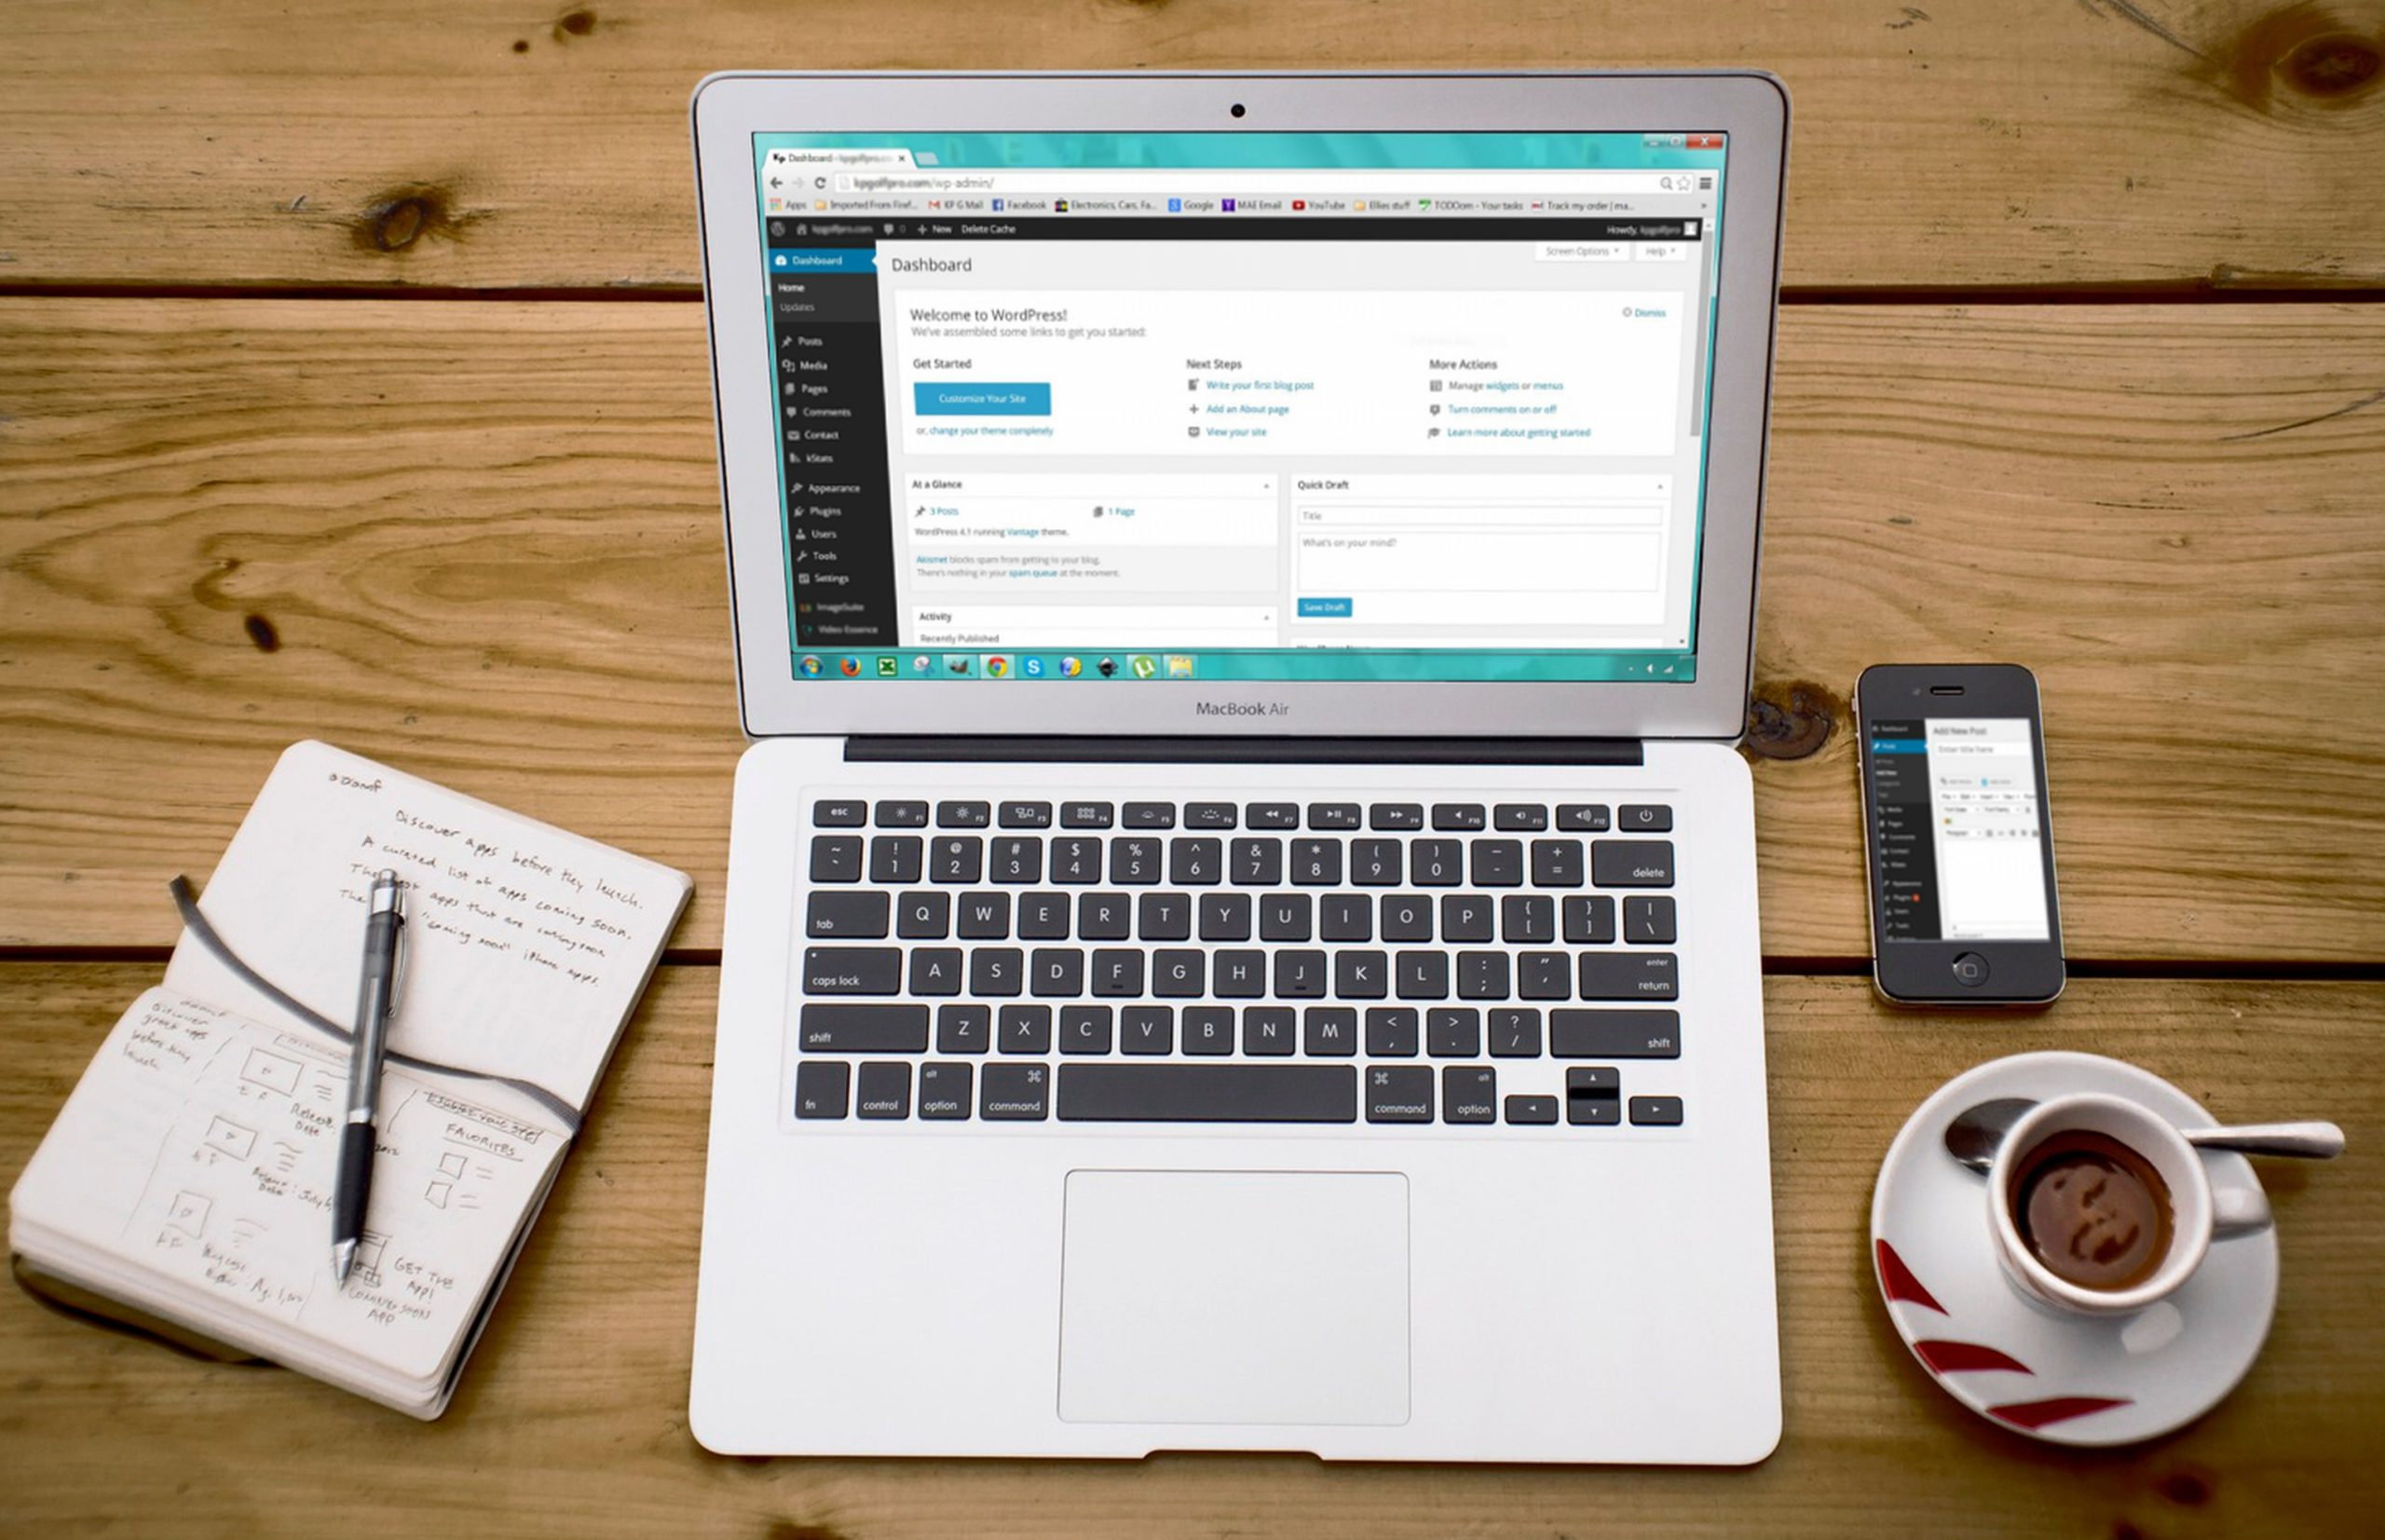 laptop showing WordPress sitting on table with a notebook